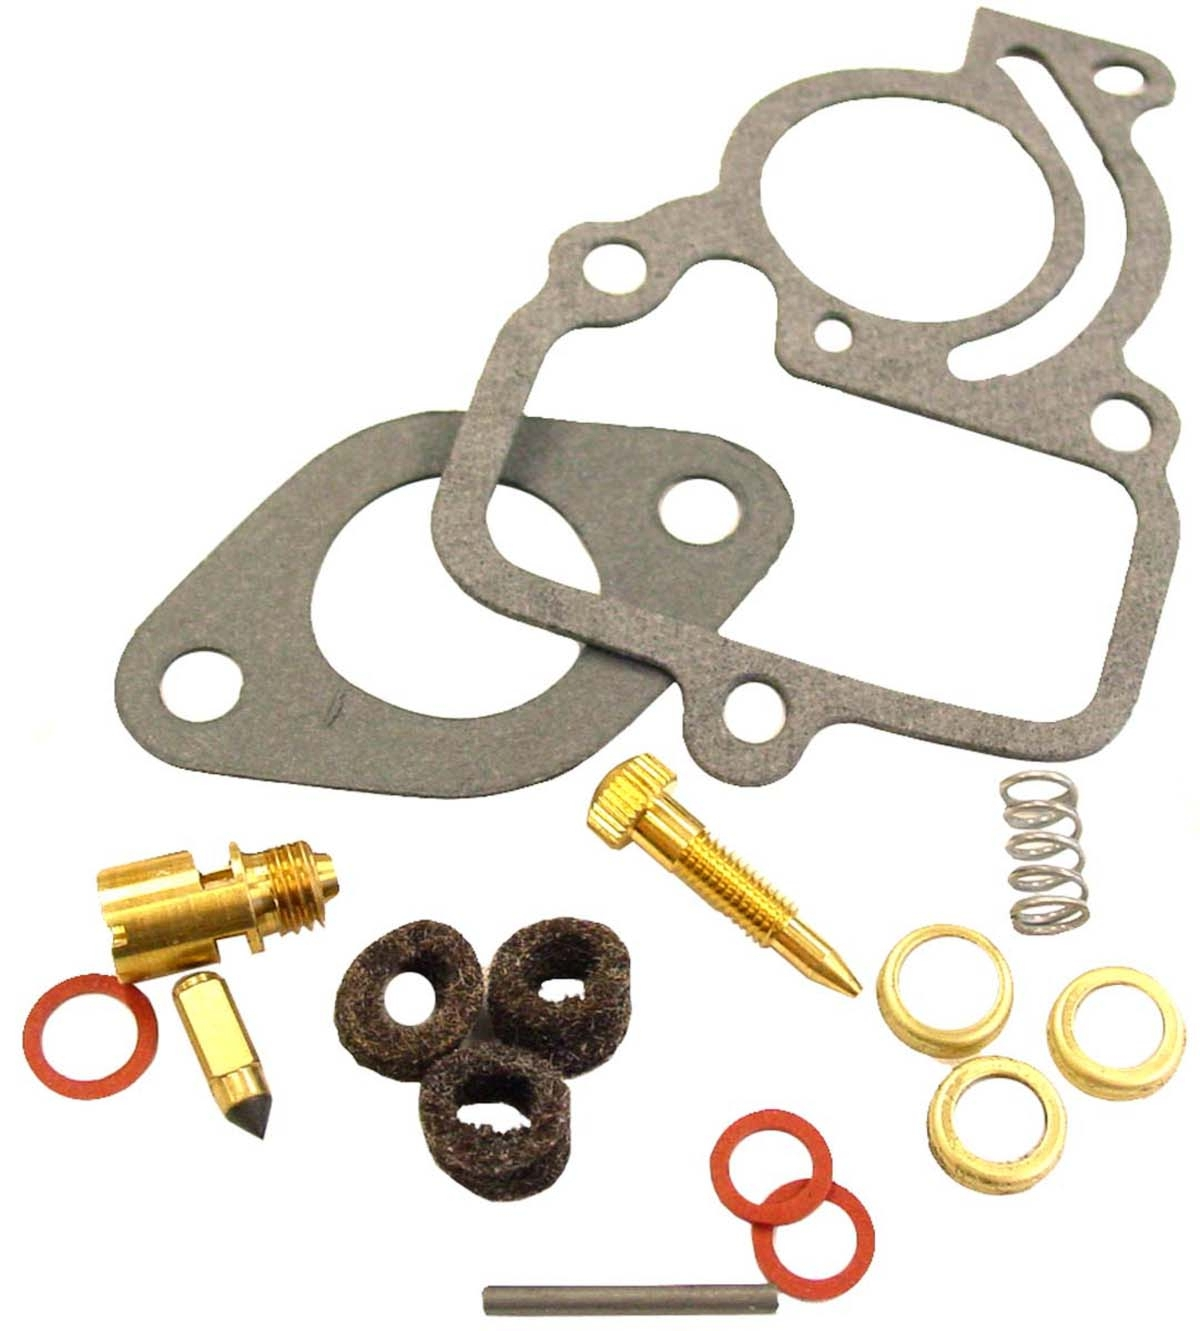 CARBURETOR REPAIR KIT FOR IH CARB - Farmall Cub